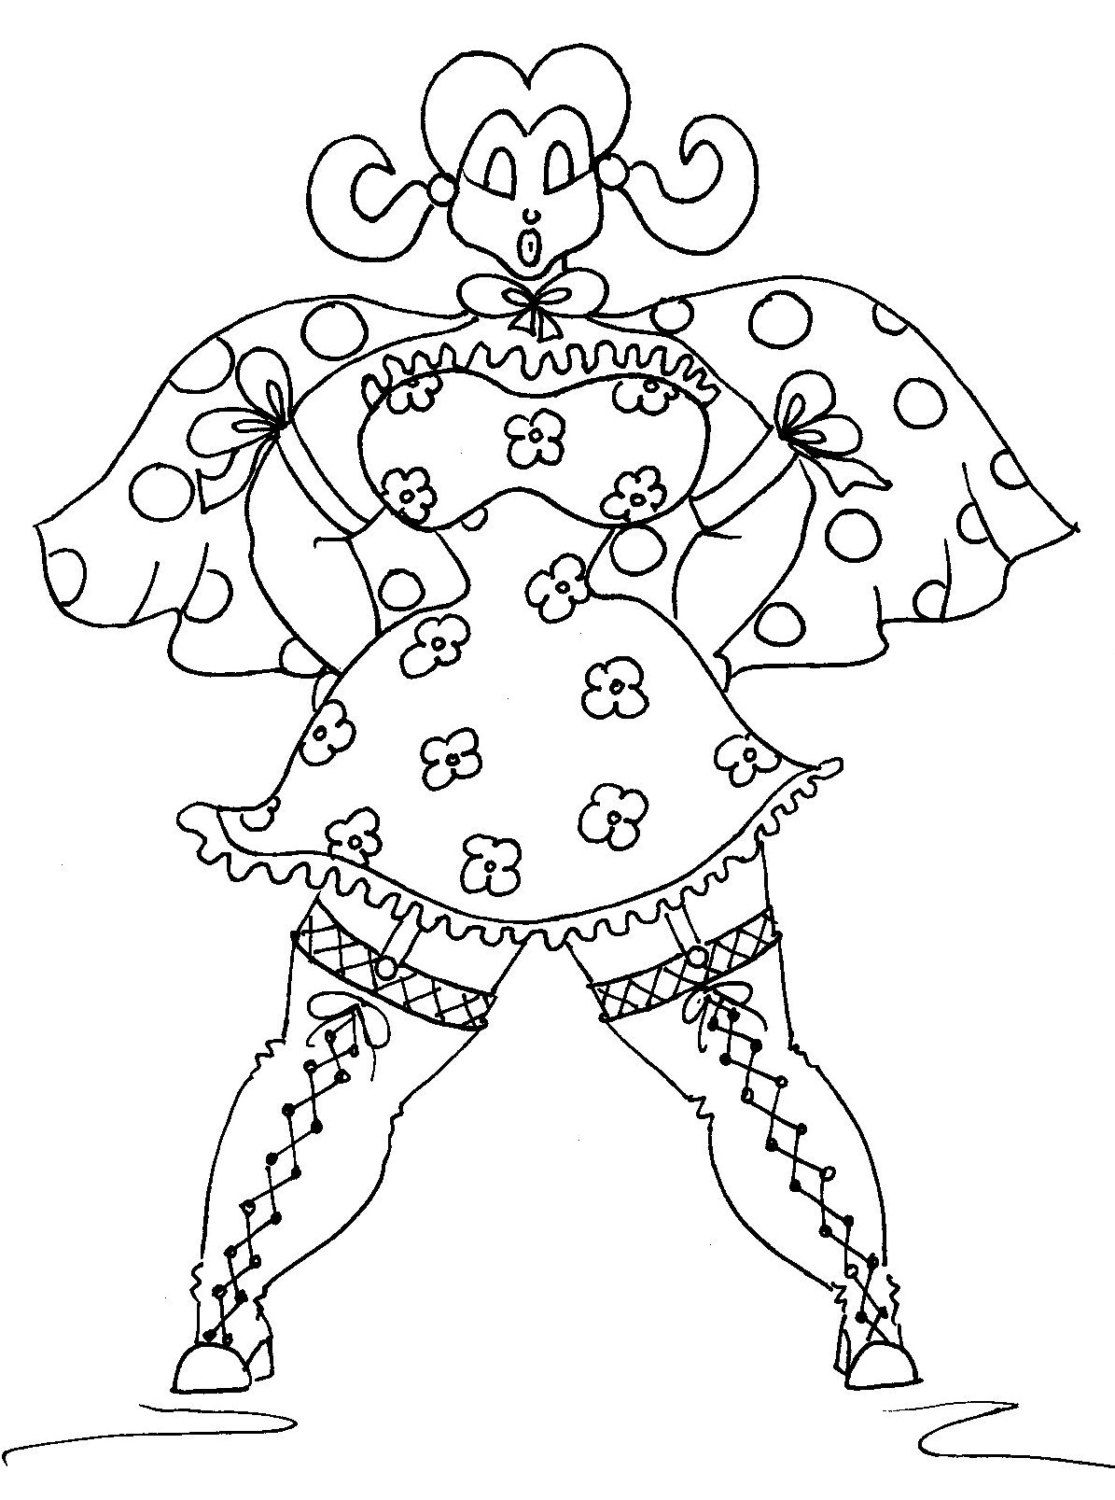 adult coloring page by chubby art cartoons diy printable coloring pages to the rescue in sexy boots mini dress cape